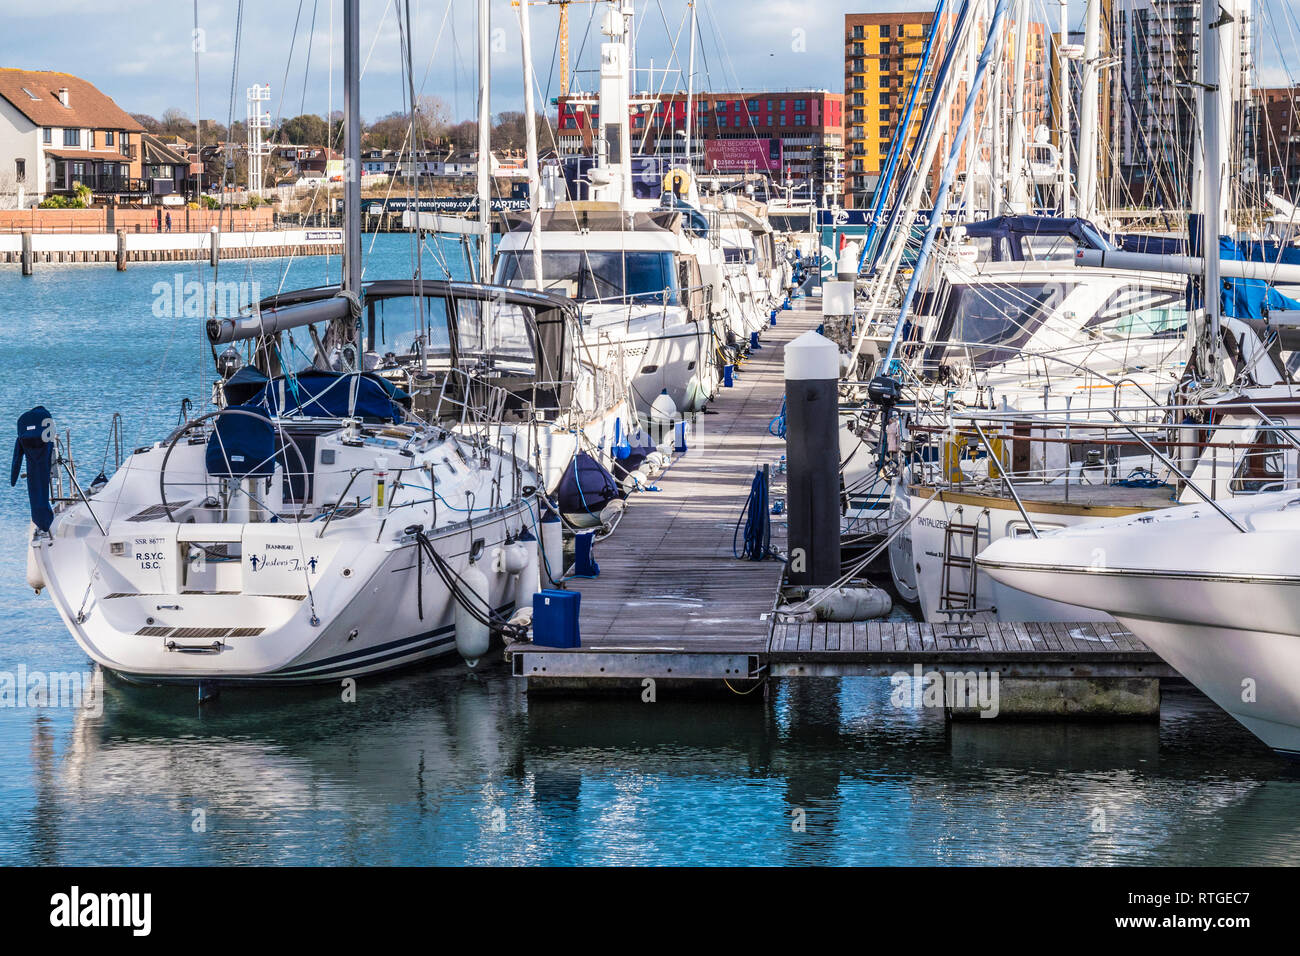 Ocean Village and Centenary Quay in Southampton, UK. - Stock Image